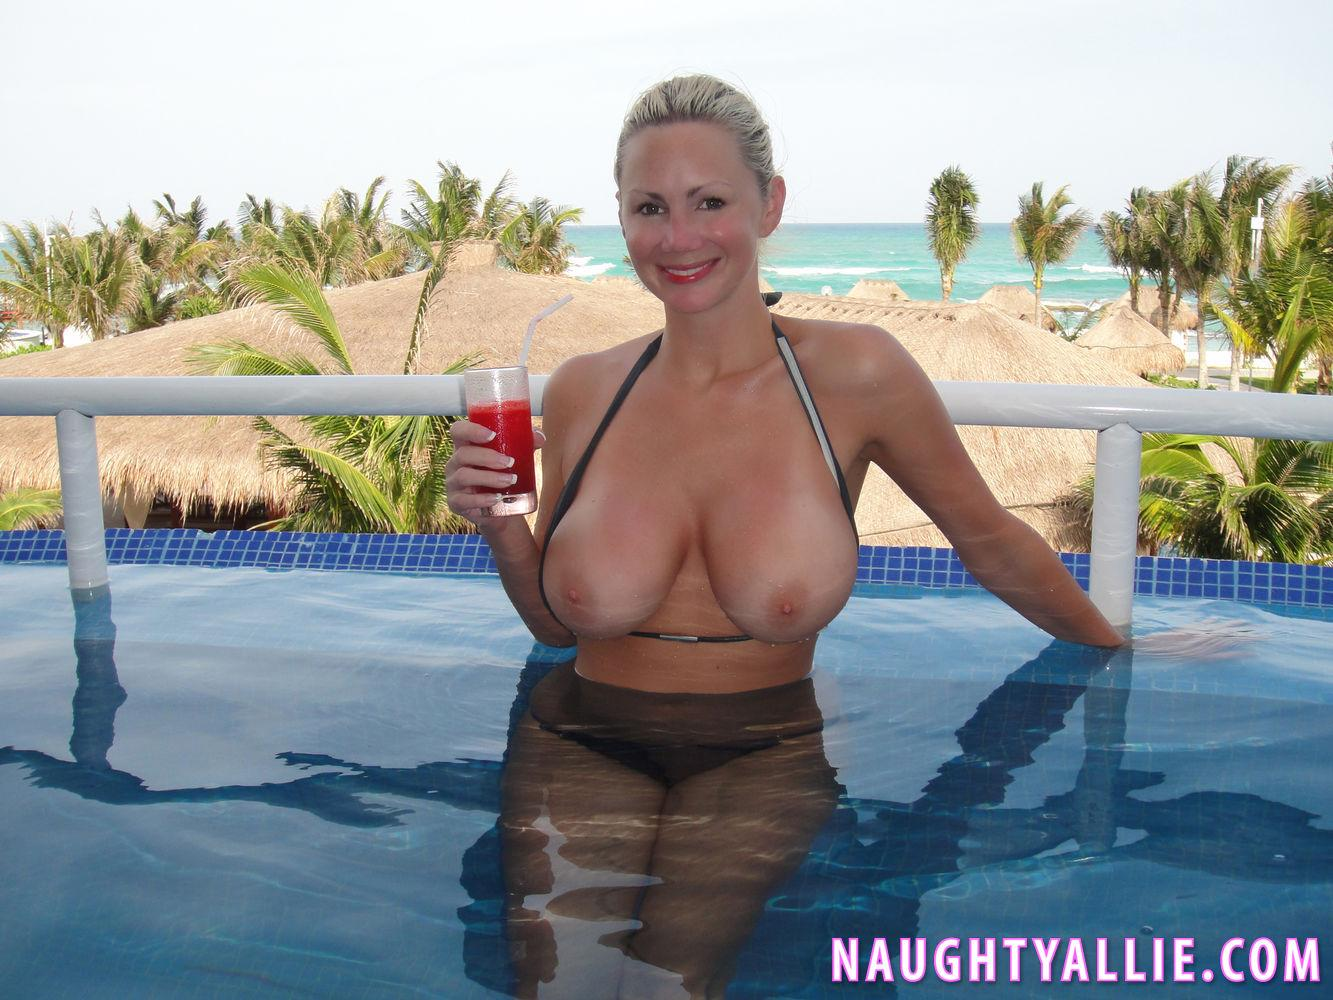 Naughty Allie Gets Fully Nude At A Public Swimming Pool -6821